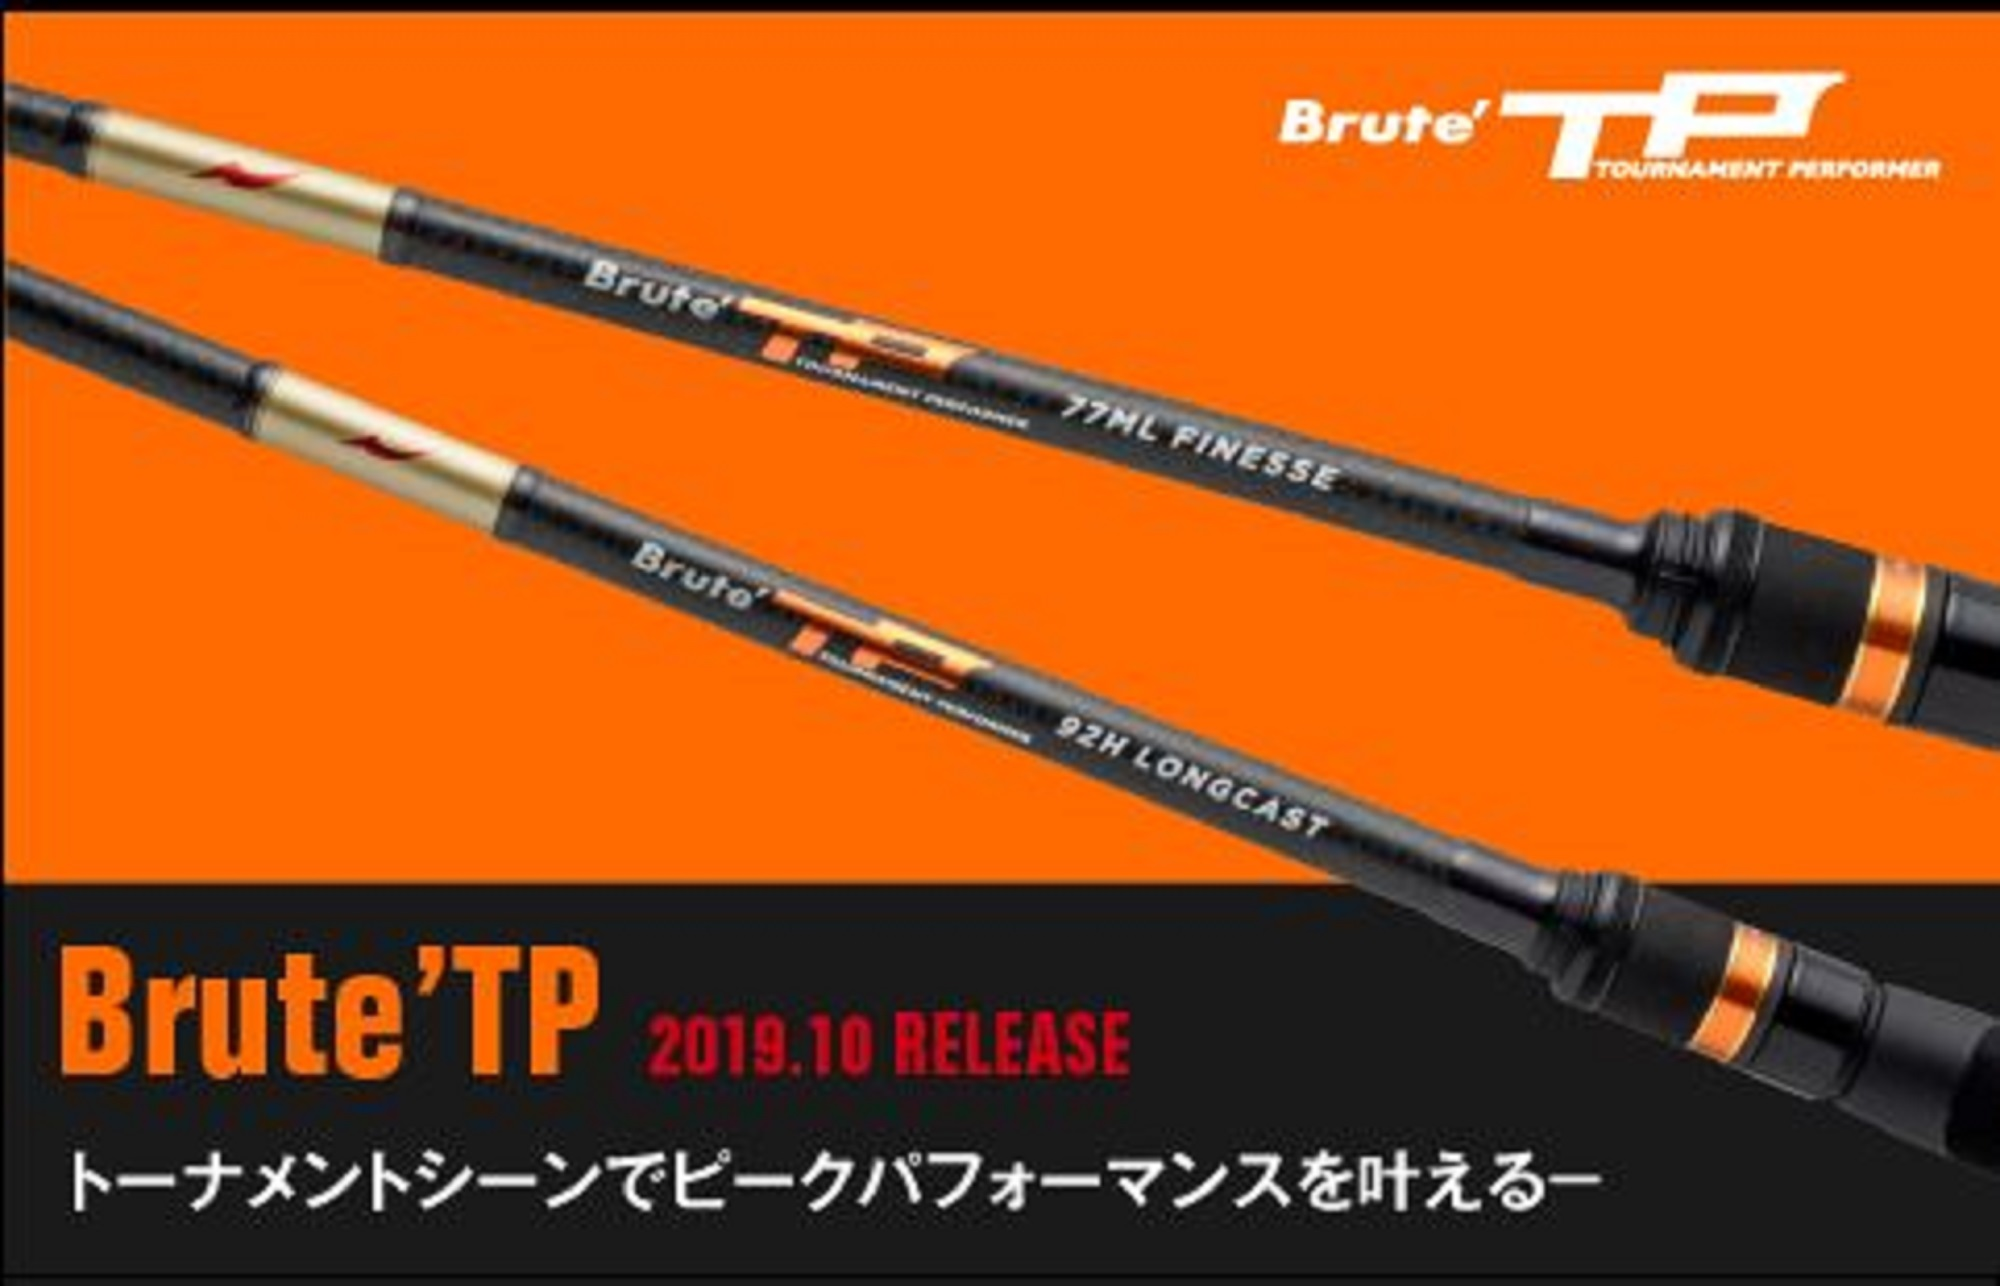 Apia Rod Spinning Brute TP Long Cast 92H (9969)